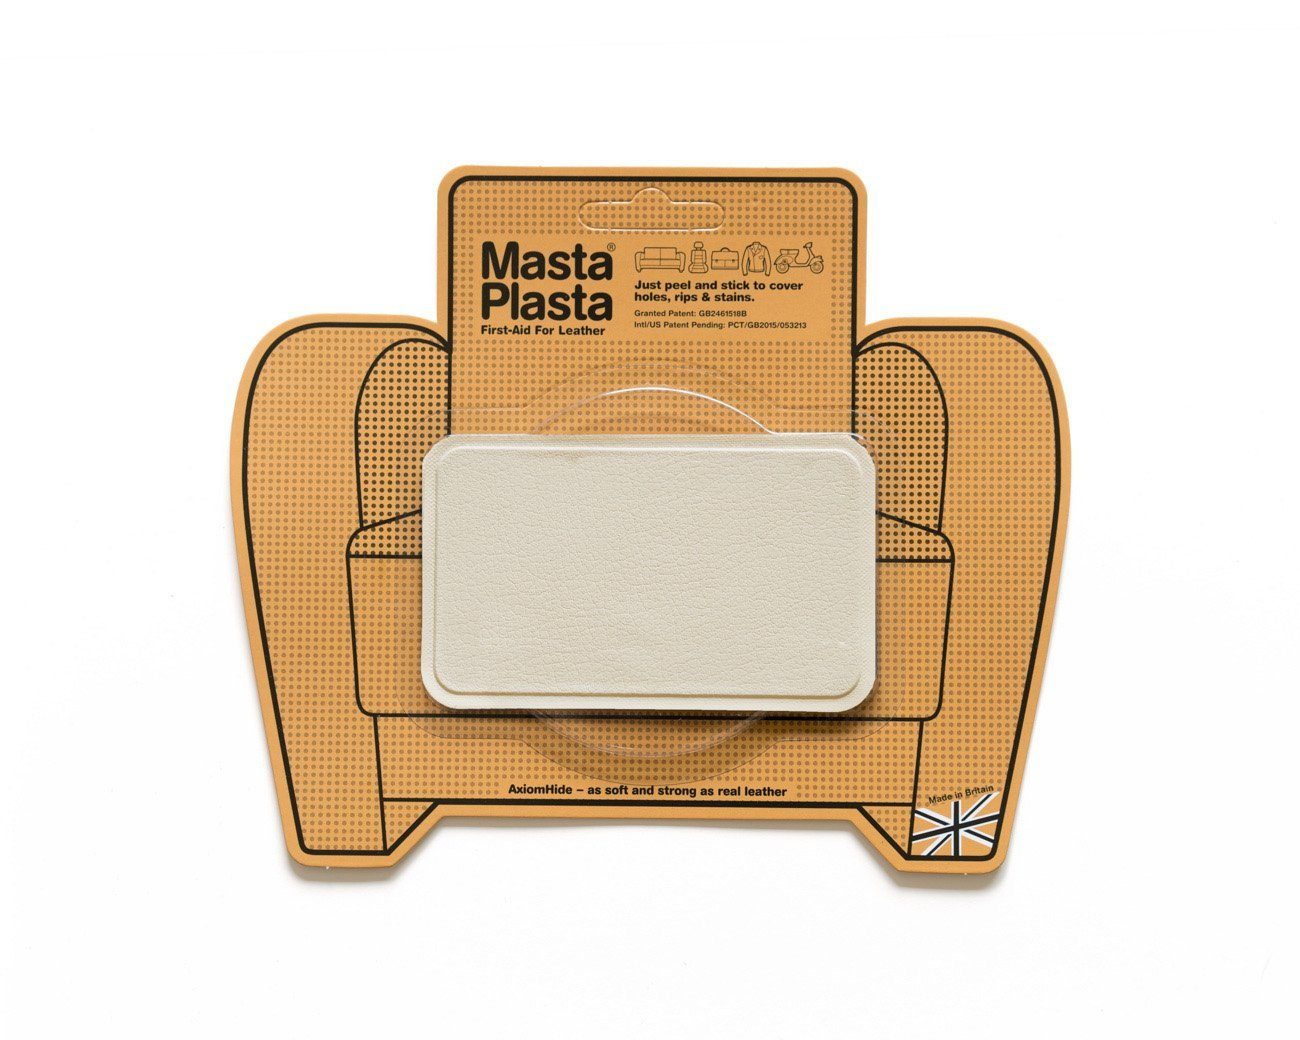 MastaPlasta Peel and Stick First-Aid Leather Repair Band-Aid for Furniture, Medium Plain, 4-Inch by 2.4-Inch, Ivory Mastaplasta Limited IVORYMED4X2.4STITCHUSA